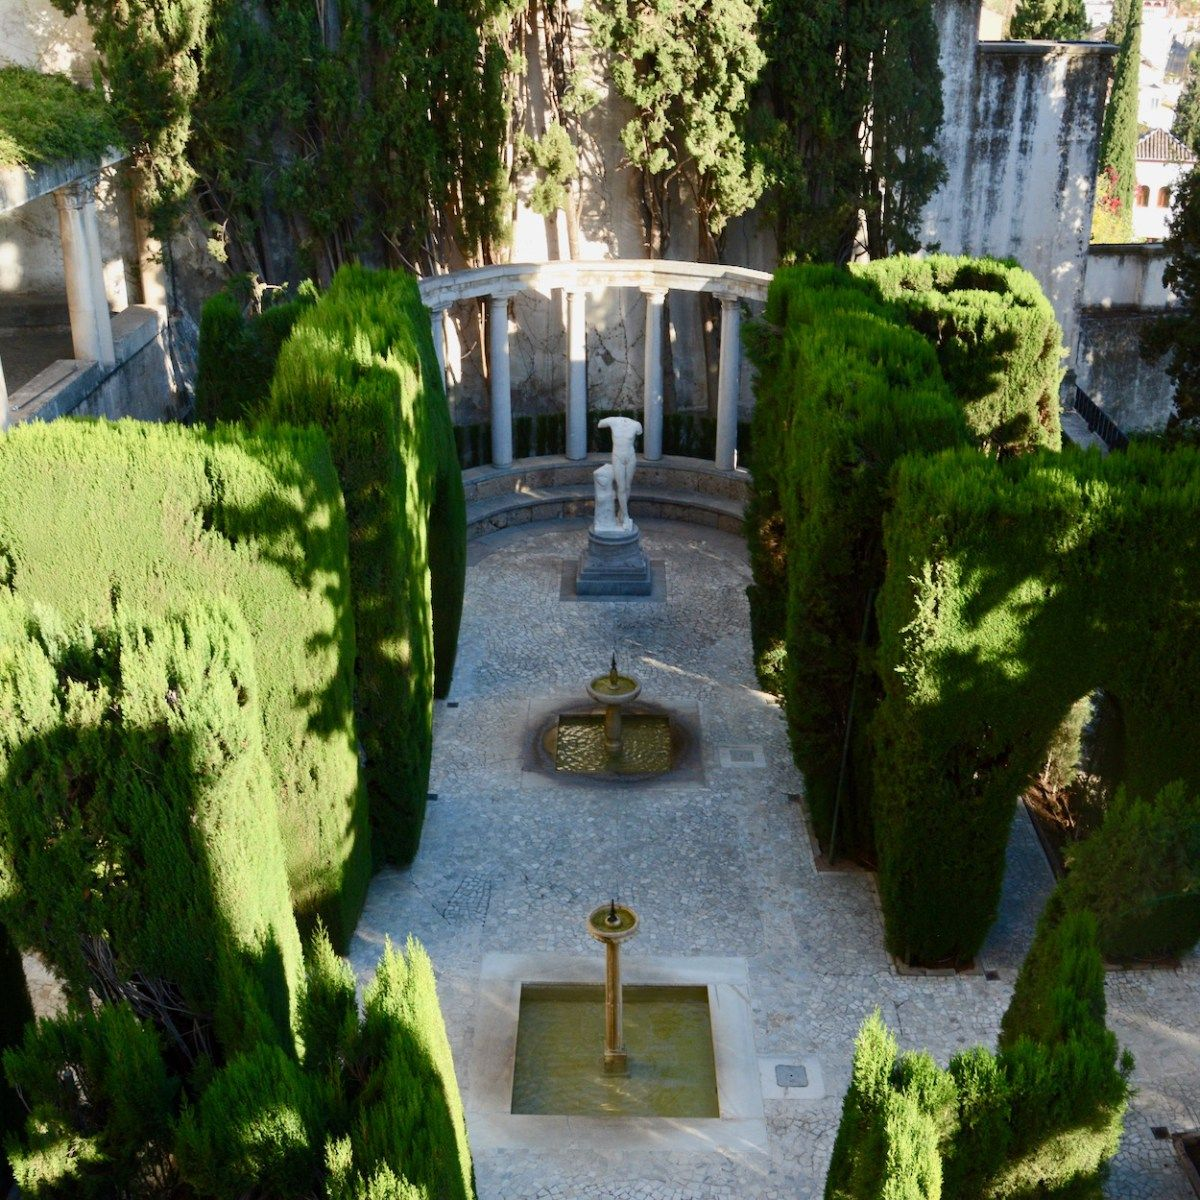 The Fundacion Rodriguez Acosta is a true hidden gem among sights in Granada and offten overlooked by tourists. This peculiar house should is a must see!